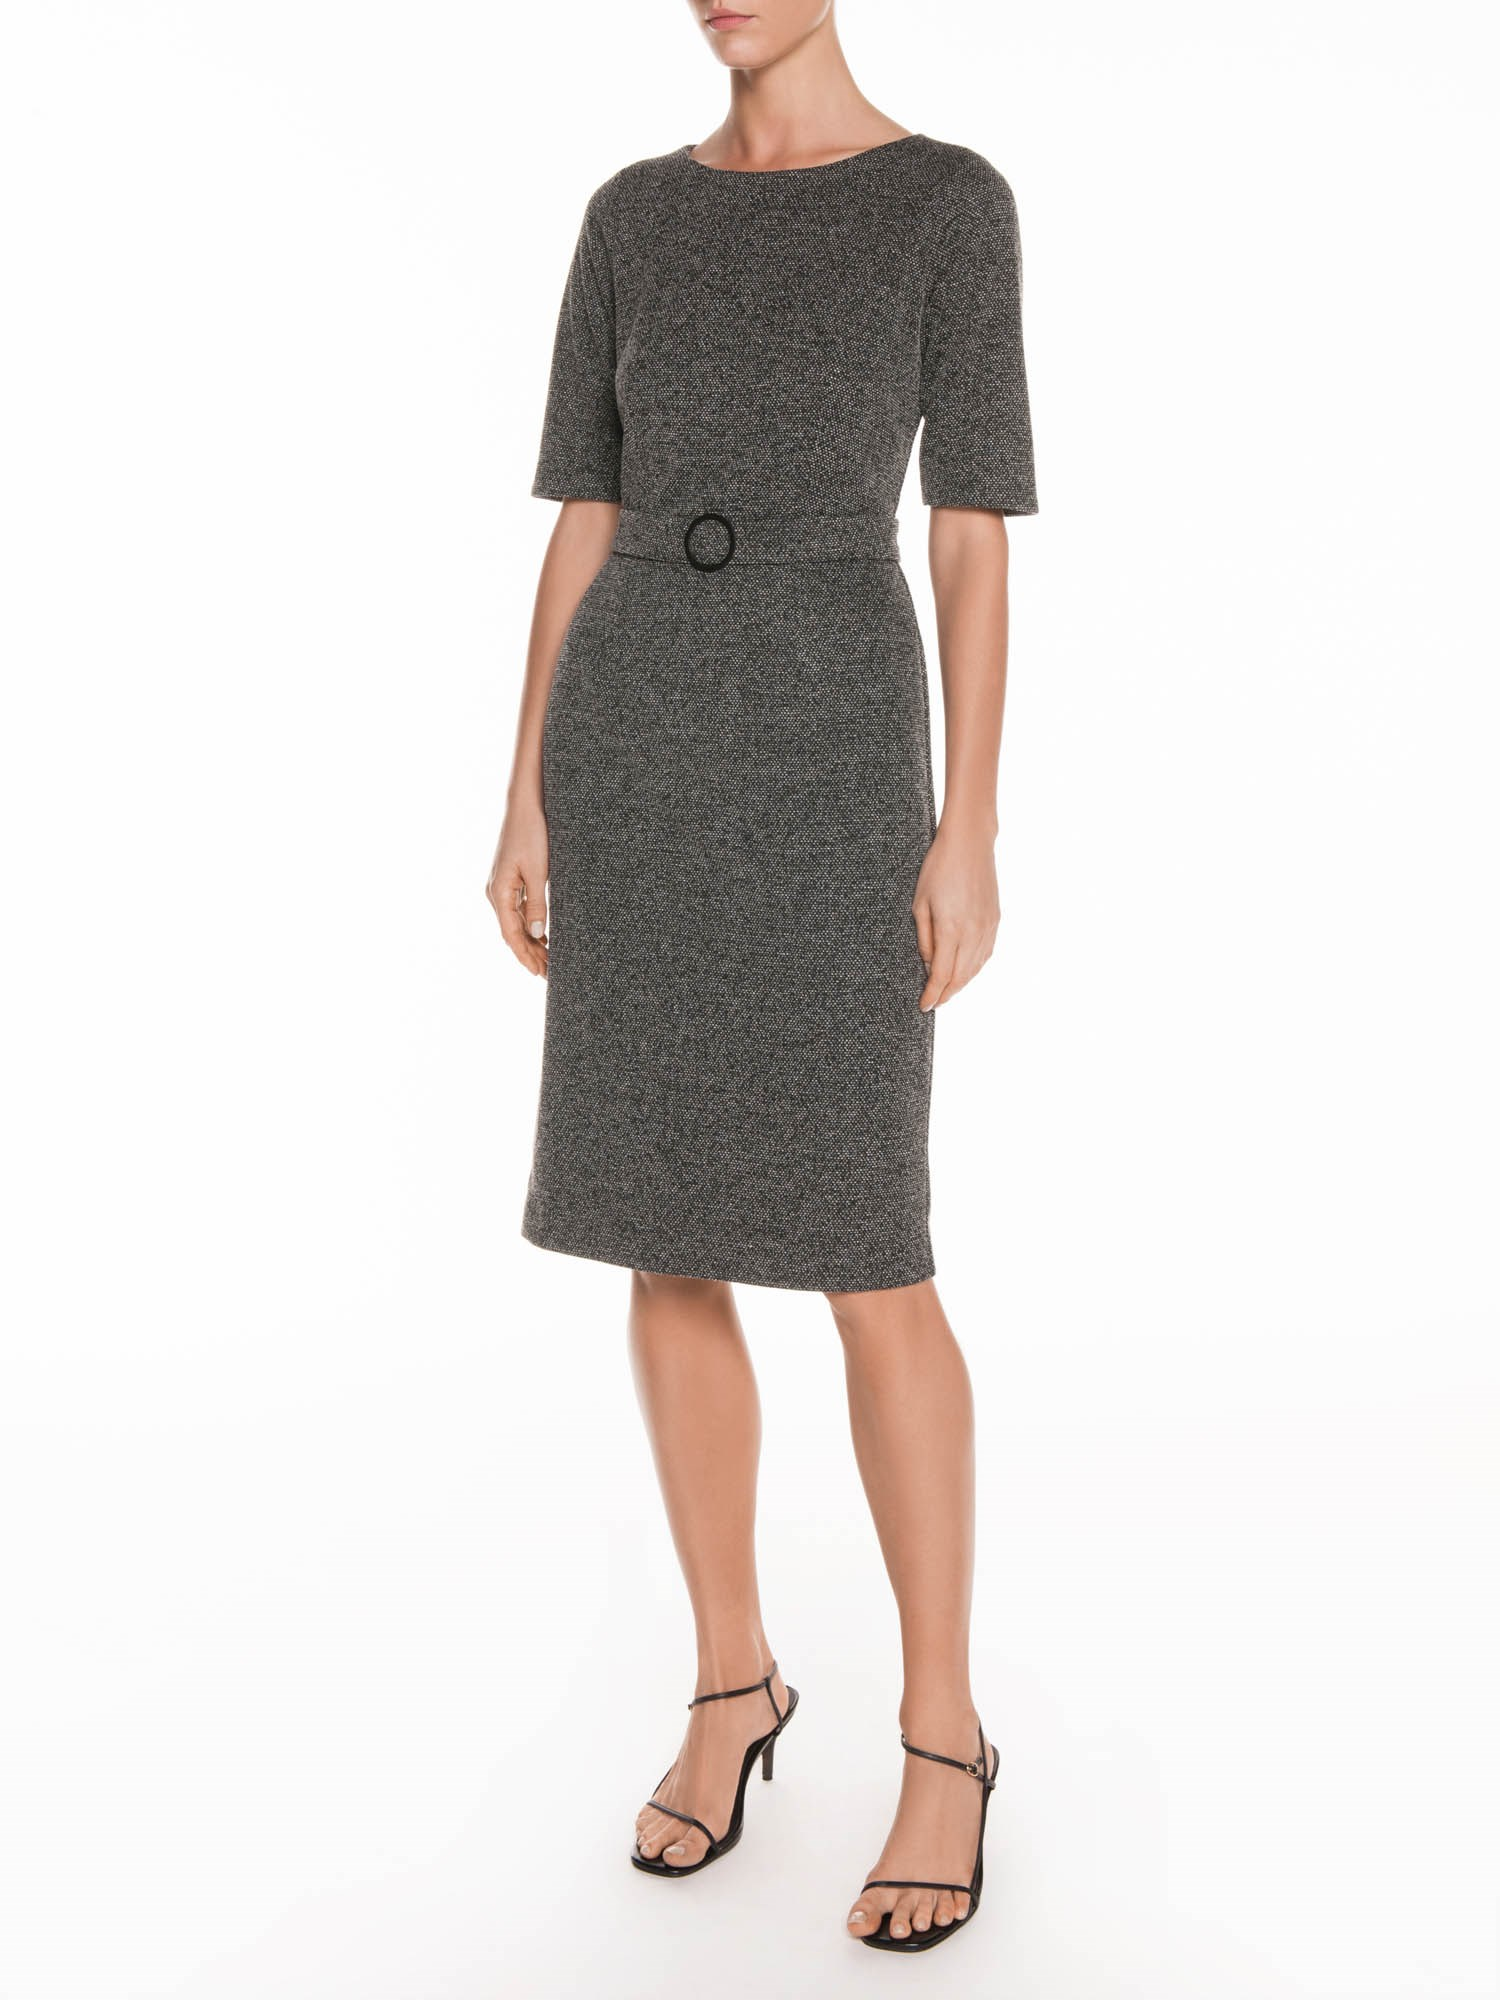 Veronika Maine Tweed O Buckle Dress | Stay at Home Mum